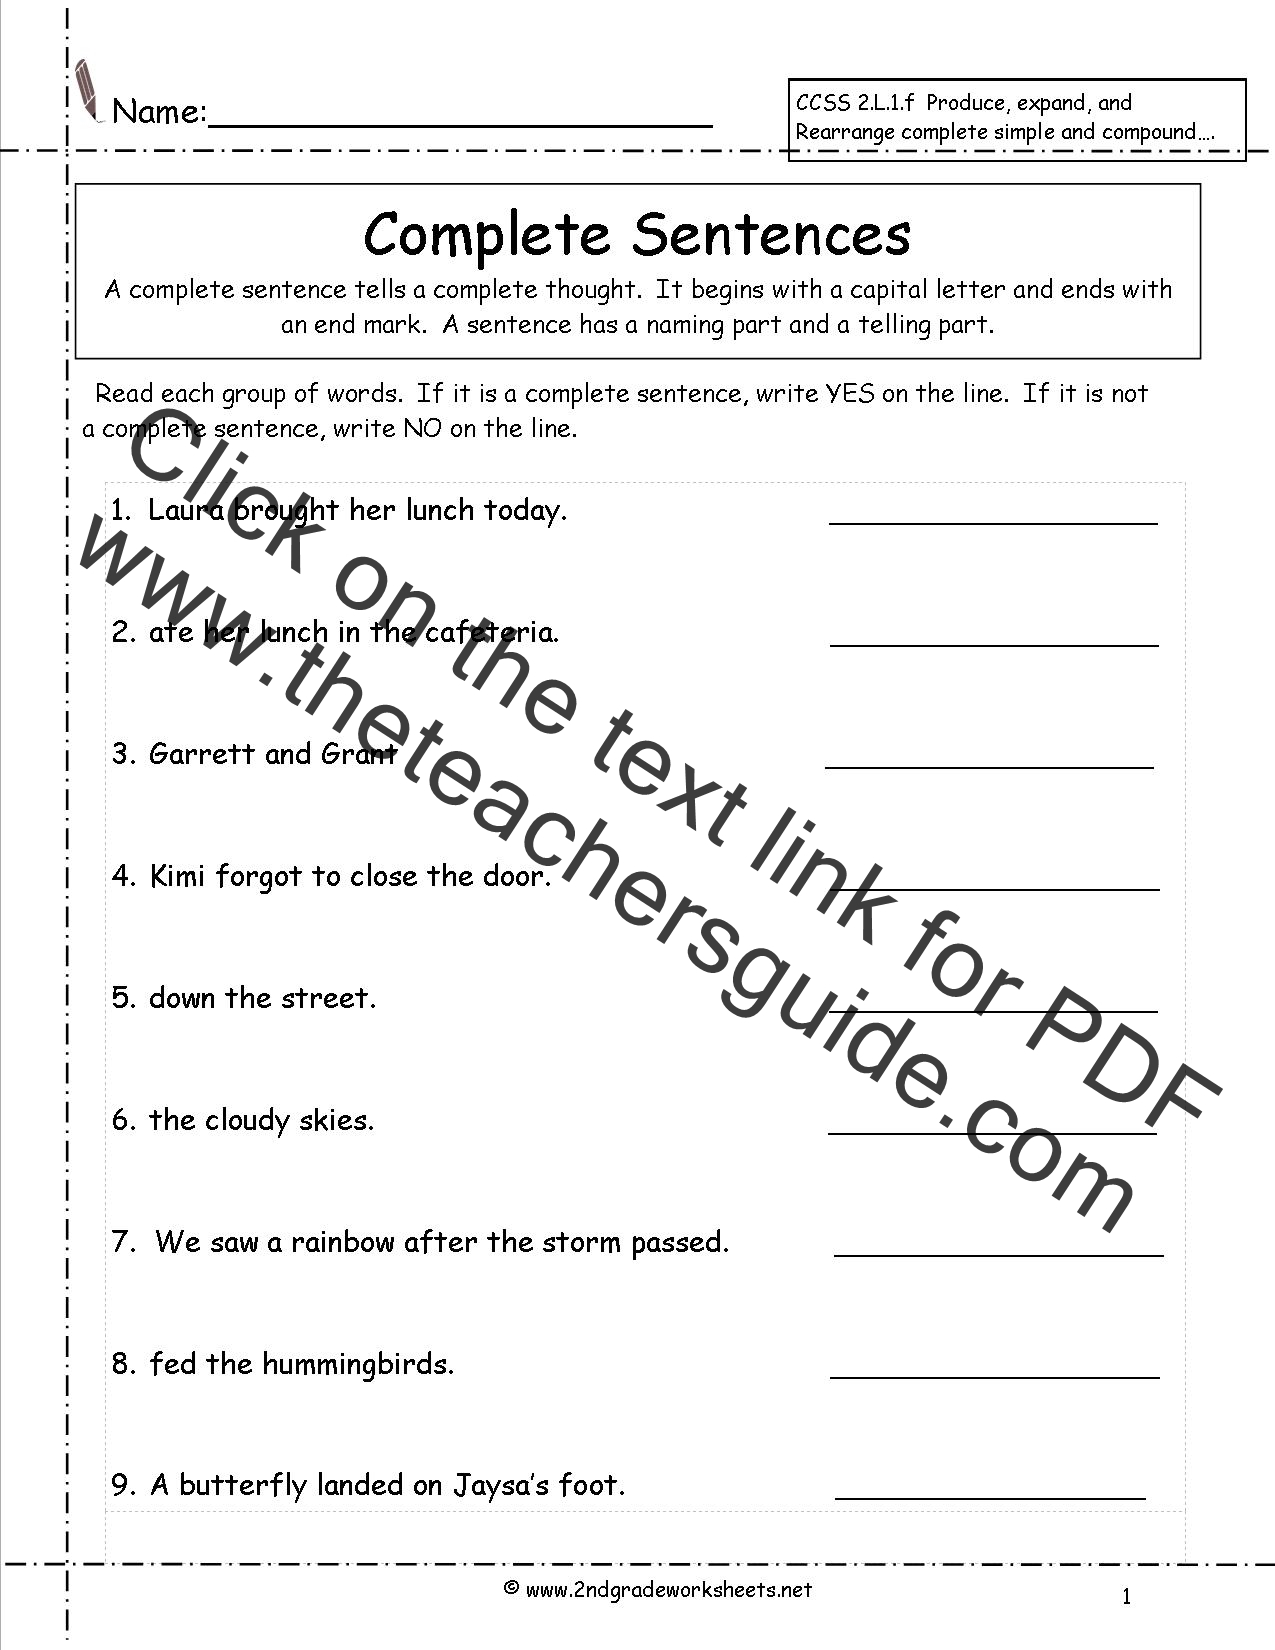 Worksheets Complete Sentences Worksheets second grade sentences worksheets ccss 2 l 1 f sentence worksheet complete sentences